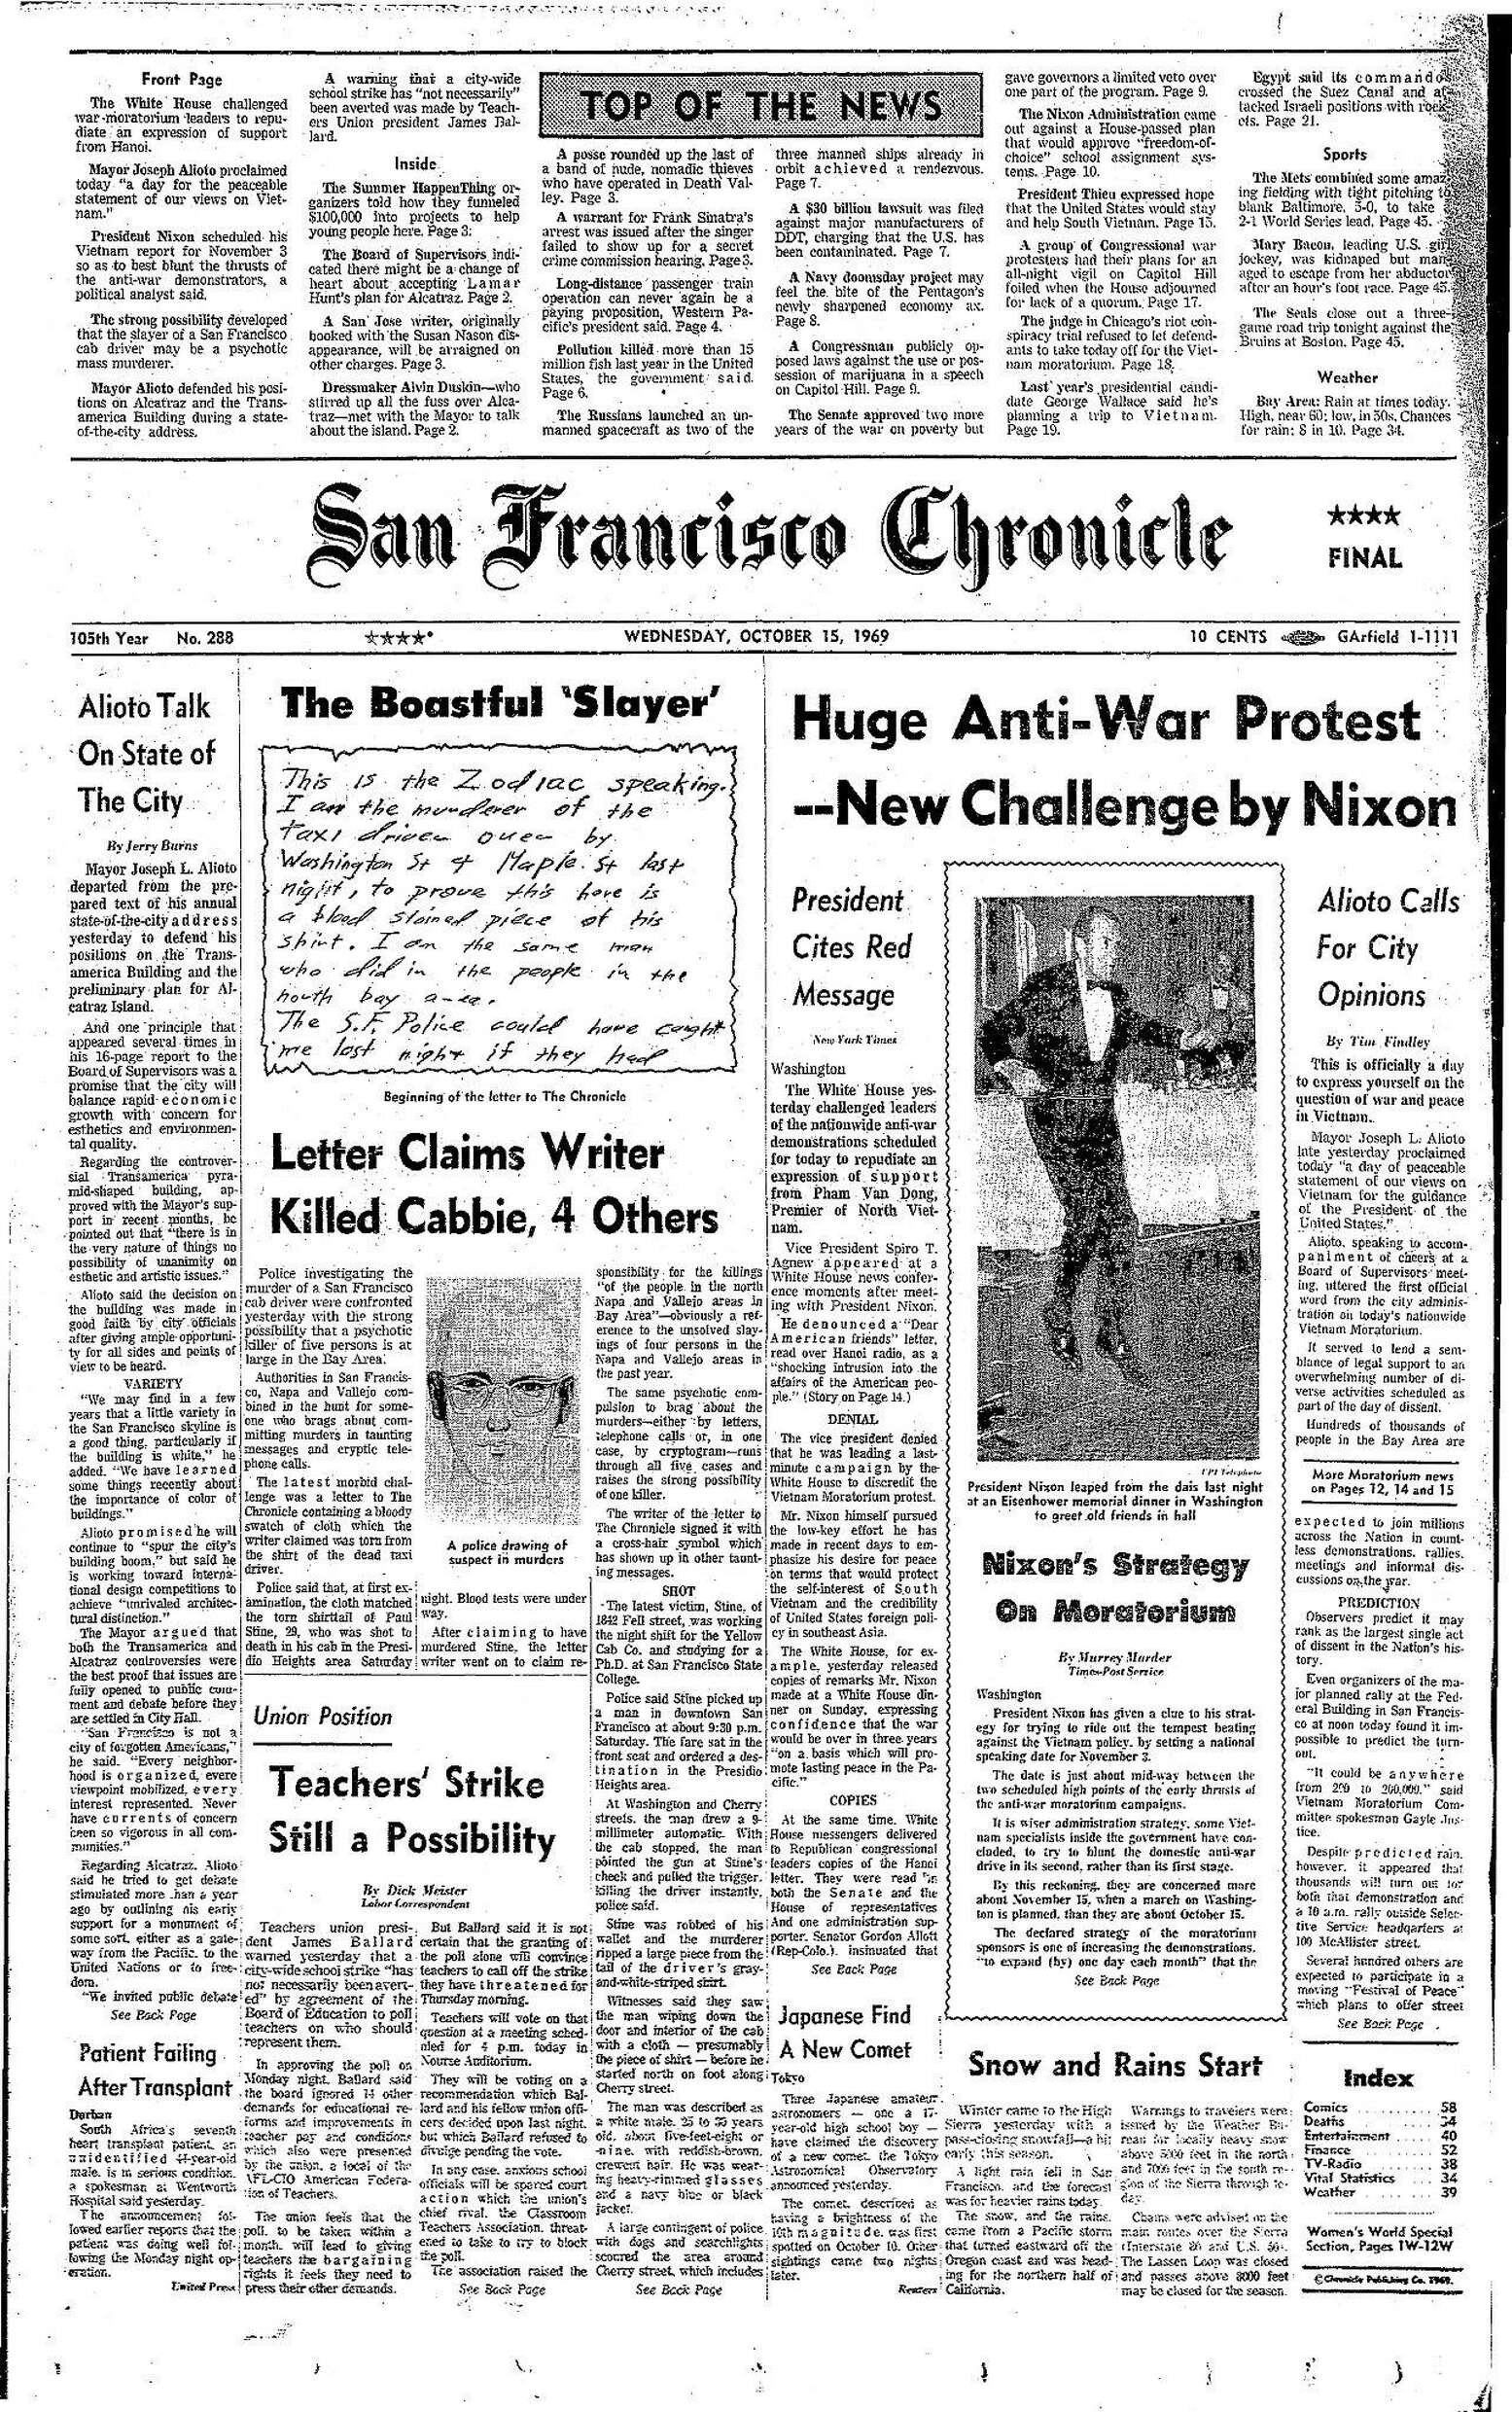 """Chronicle Covers: When the Zodiac killer wrote to the newsroom"" 2480x2480"